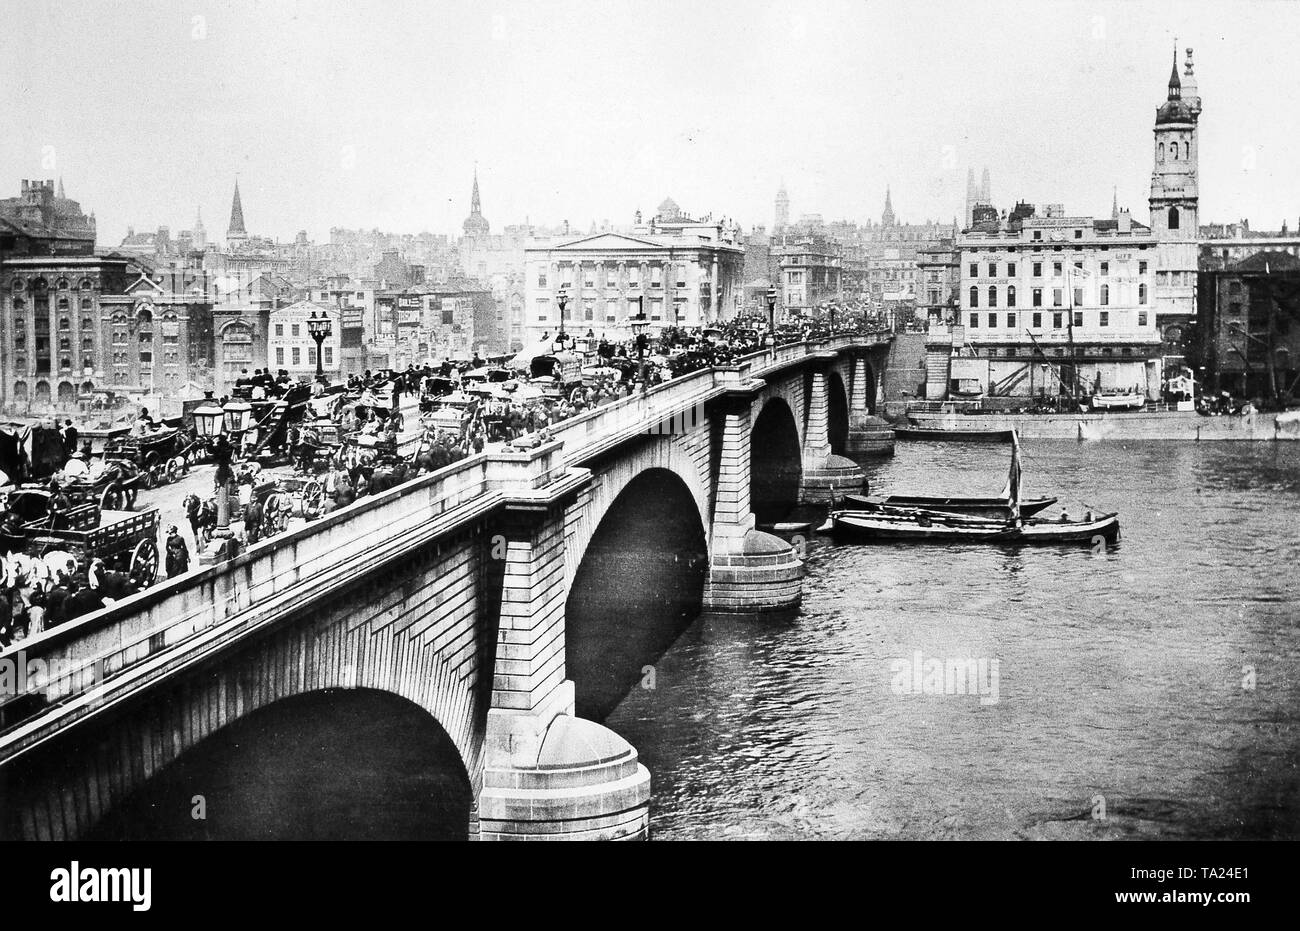 Heavy traffic on the London Bridge over the Thames river, circa 1870 - Stock Image